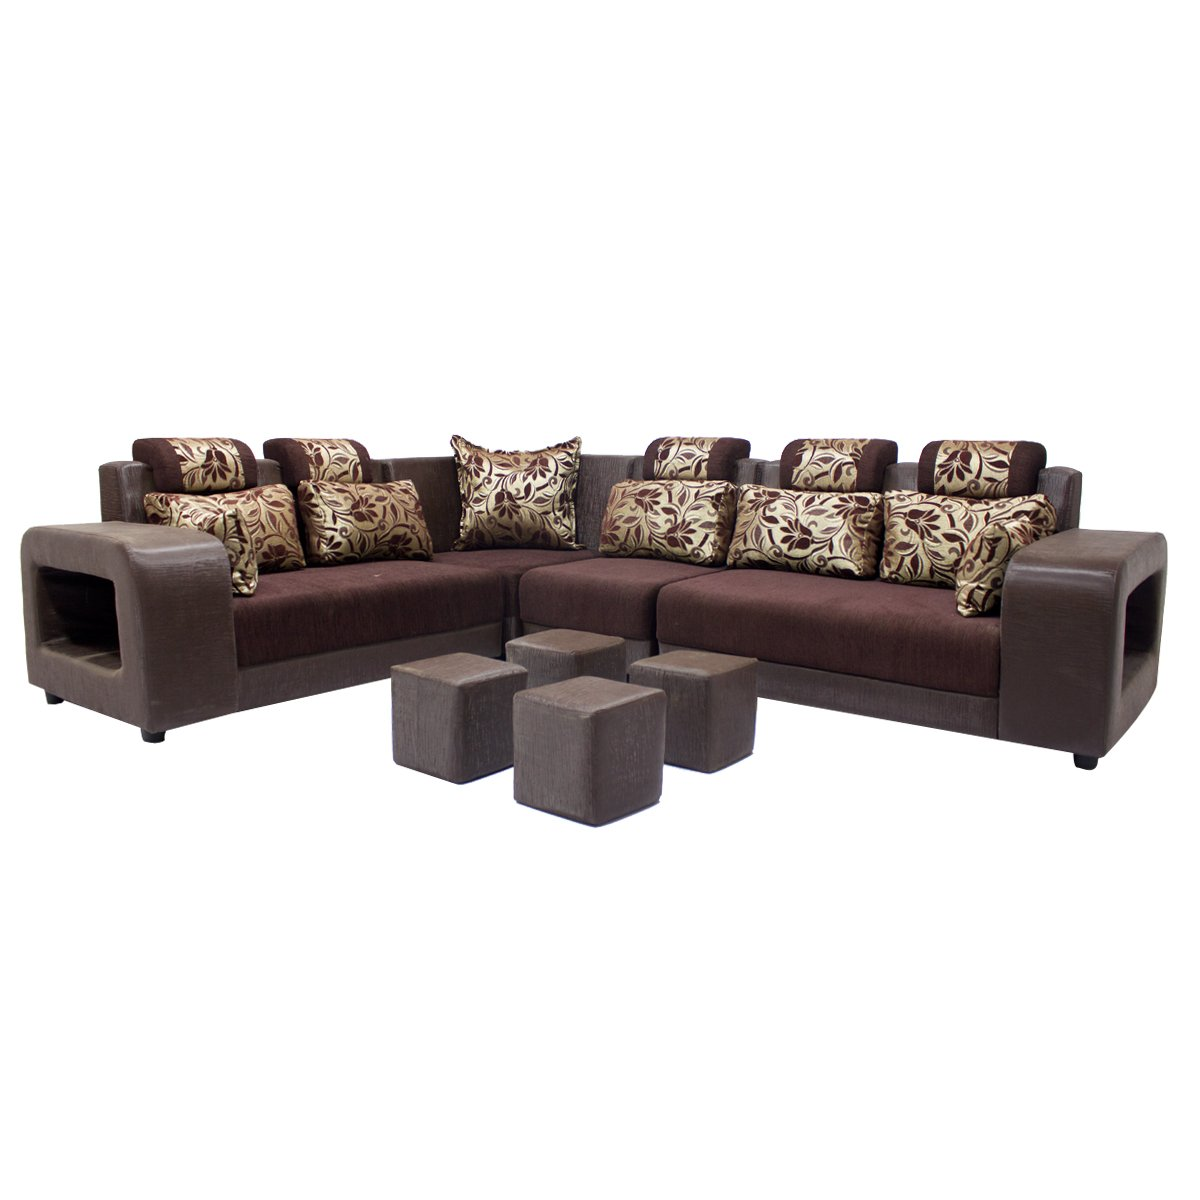 with canada vogue microfiber large ottoman sectional reclining beige of tan storage piece size furniture grey reversib chaise stores l tufted amazon reversible shaped sofas sofa